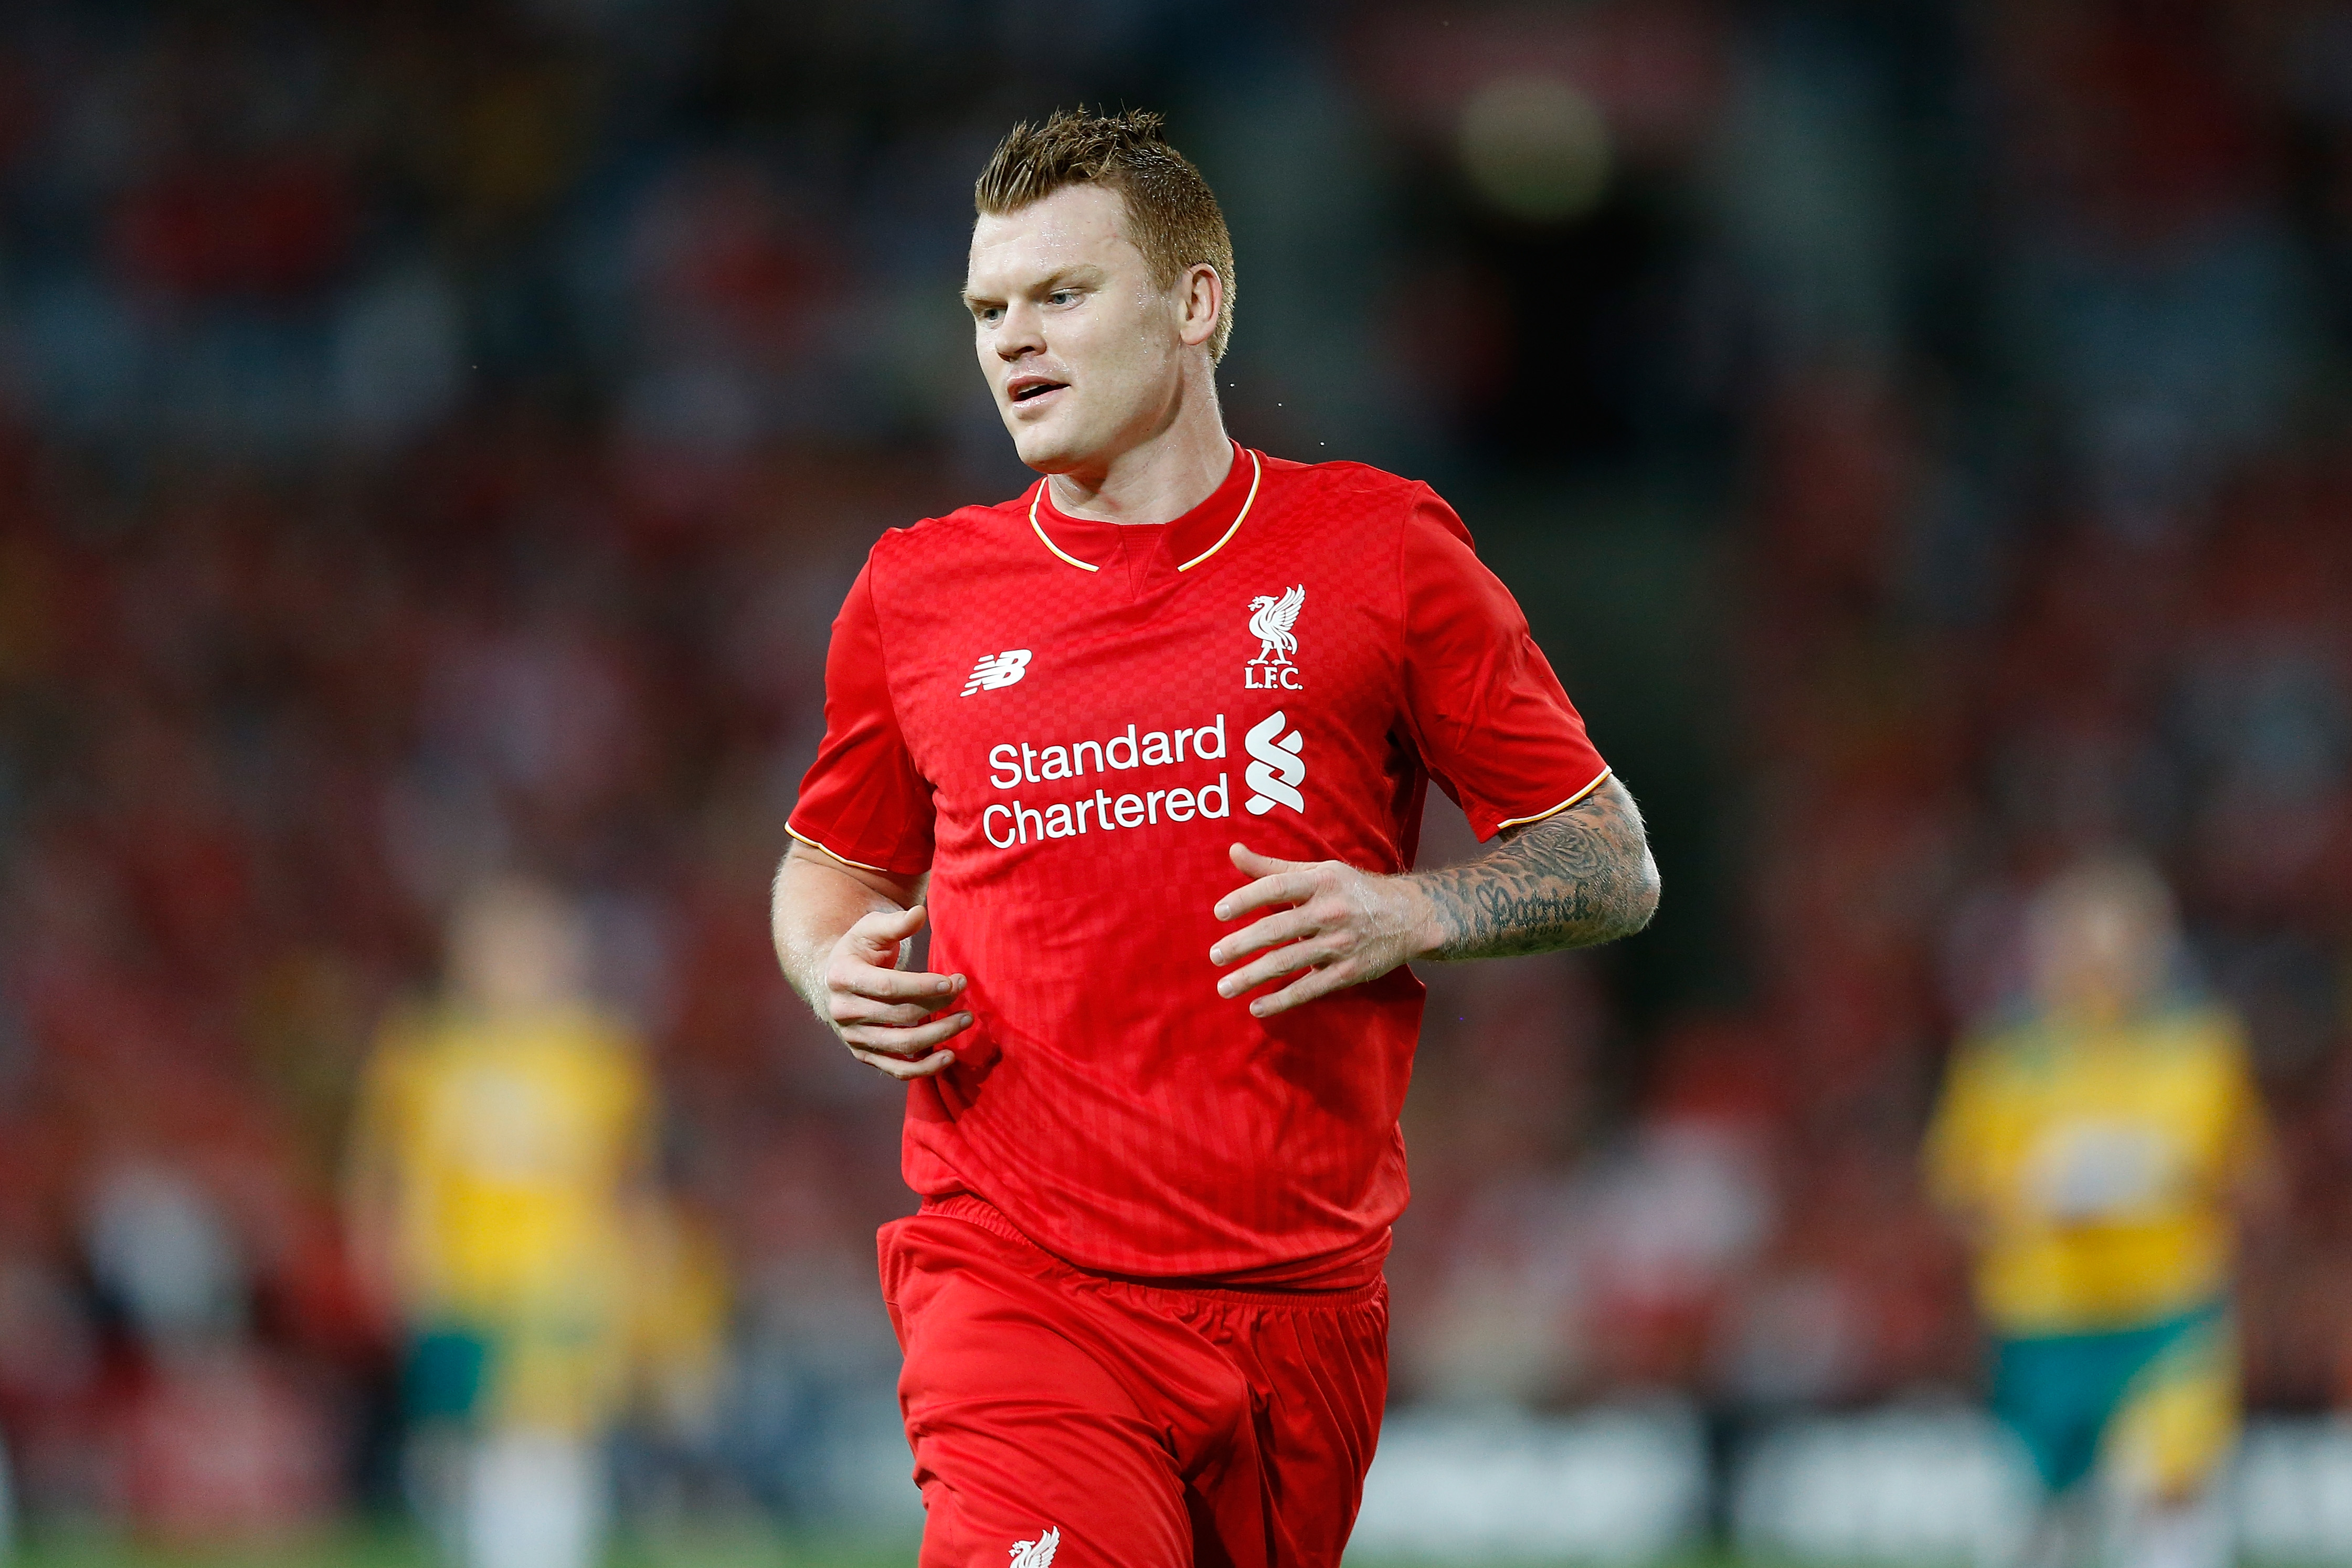 Liverpool hero John Arne Riise retires as Twitter tributes pour in